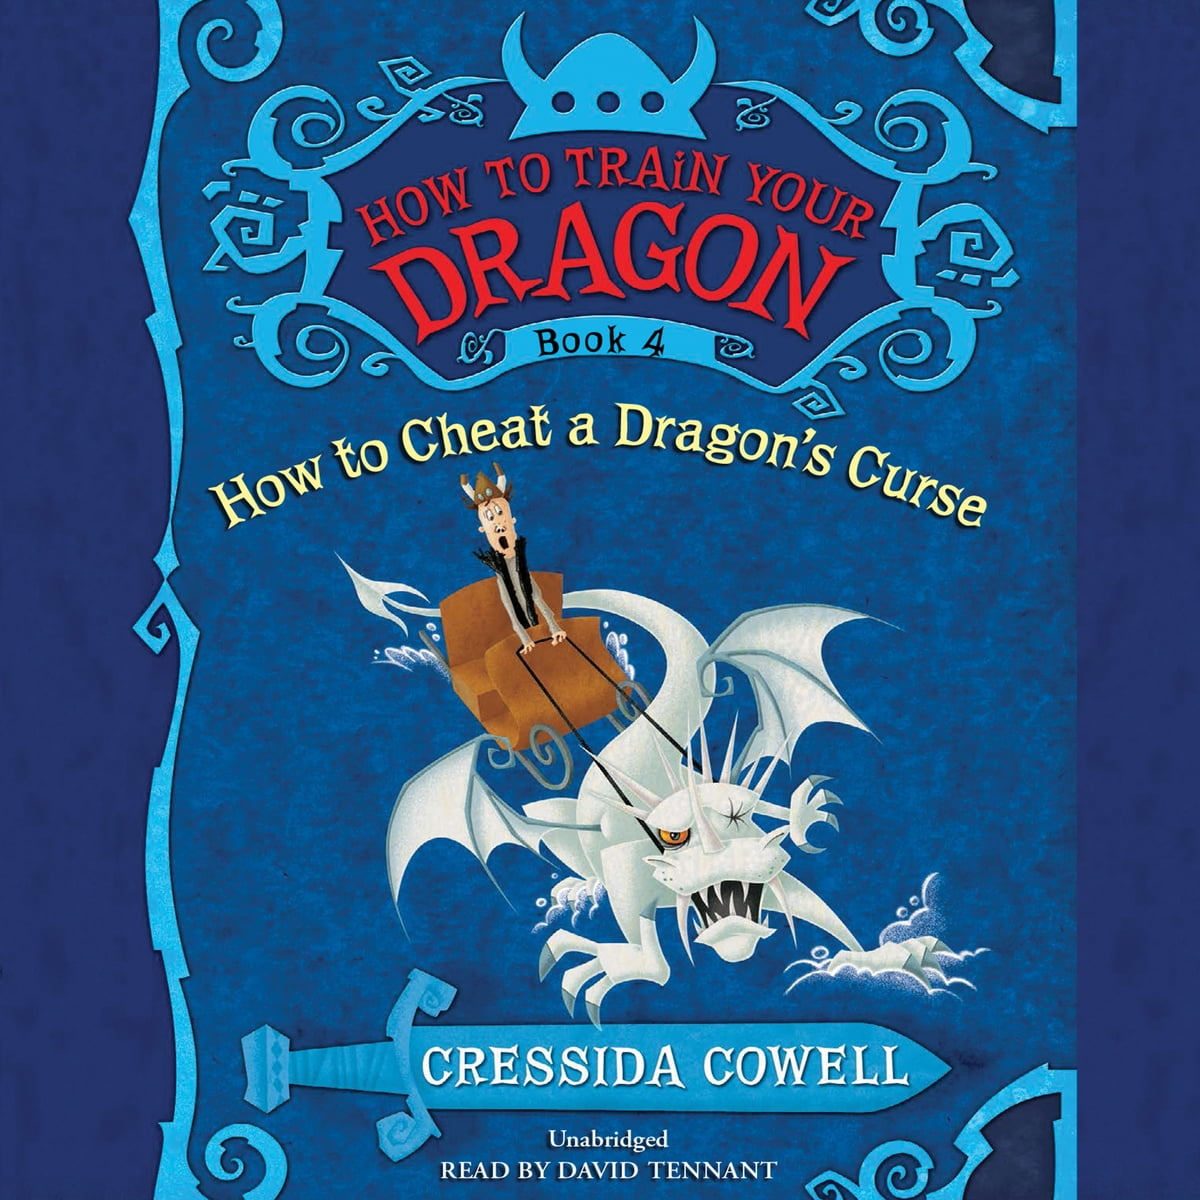 How to train your dragon how to cheat a dragons curse audiobook by how to train your dragon how to cheat a dragons curse audiobook by cressida cowell 9781478954088 rakuten kobo ccuart Images